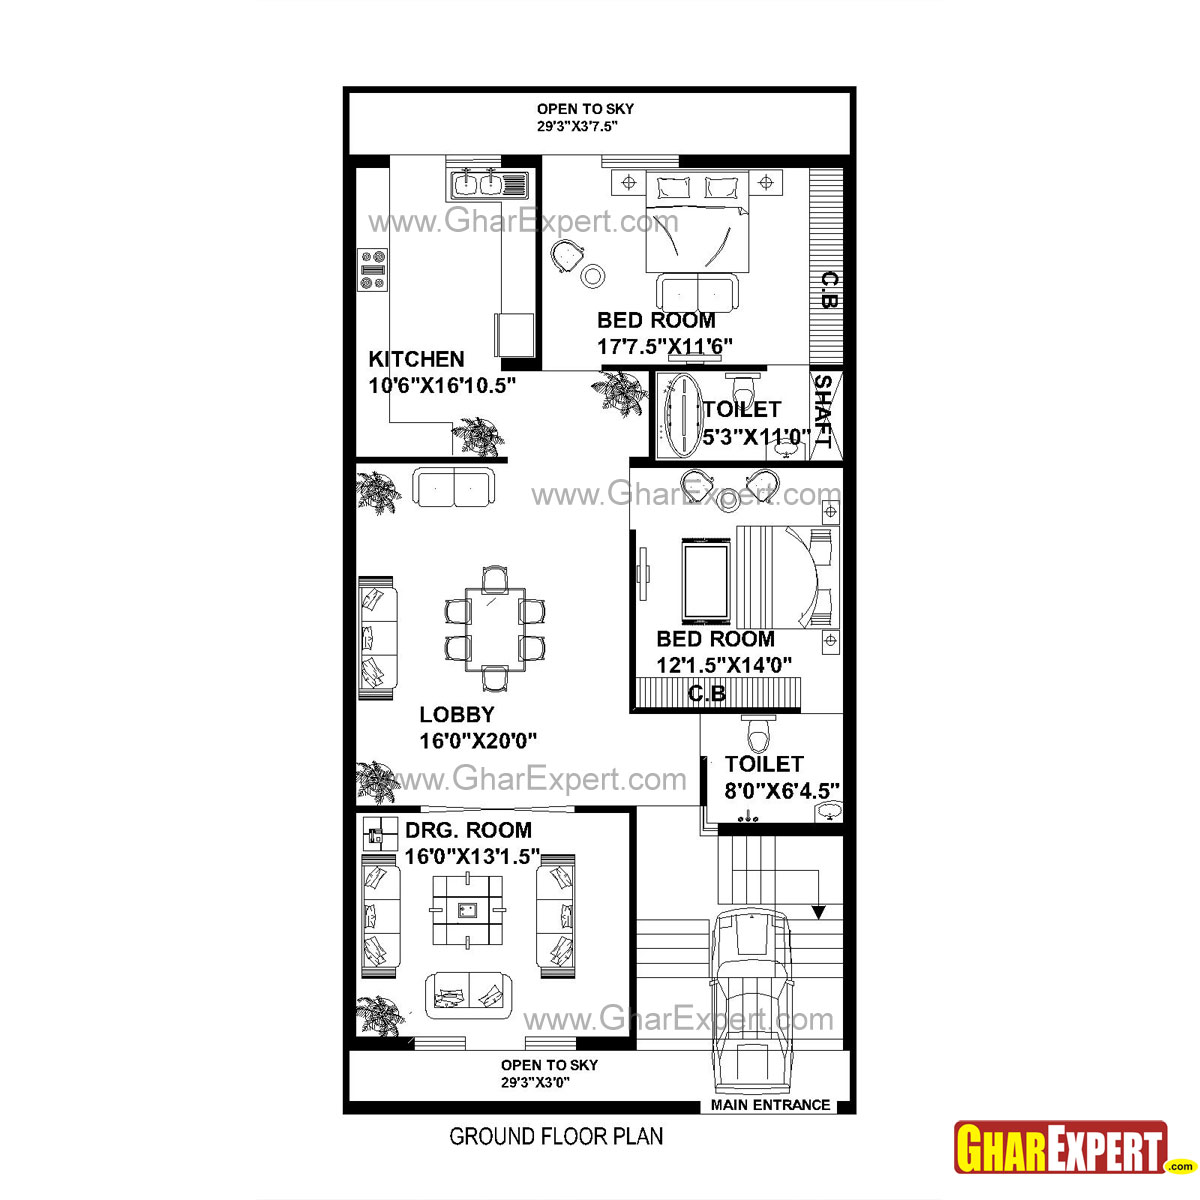 House design for 60 square meter - House Plan For 30 Feet By 60 Feet Plot Plot Size 200 Square Yards Gharexpert Com